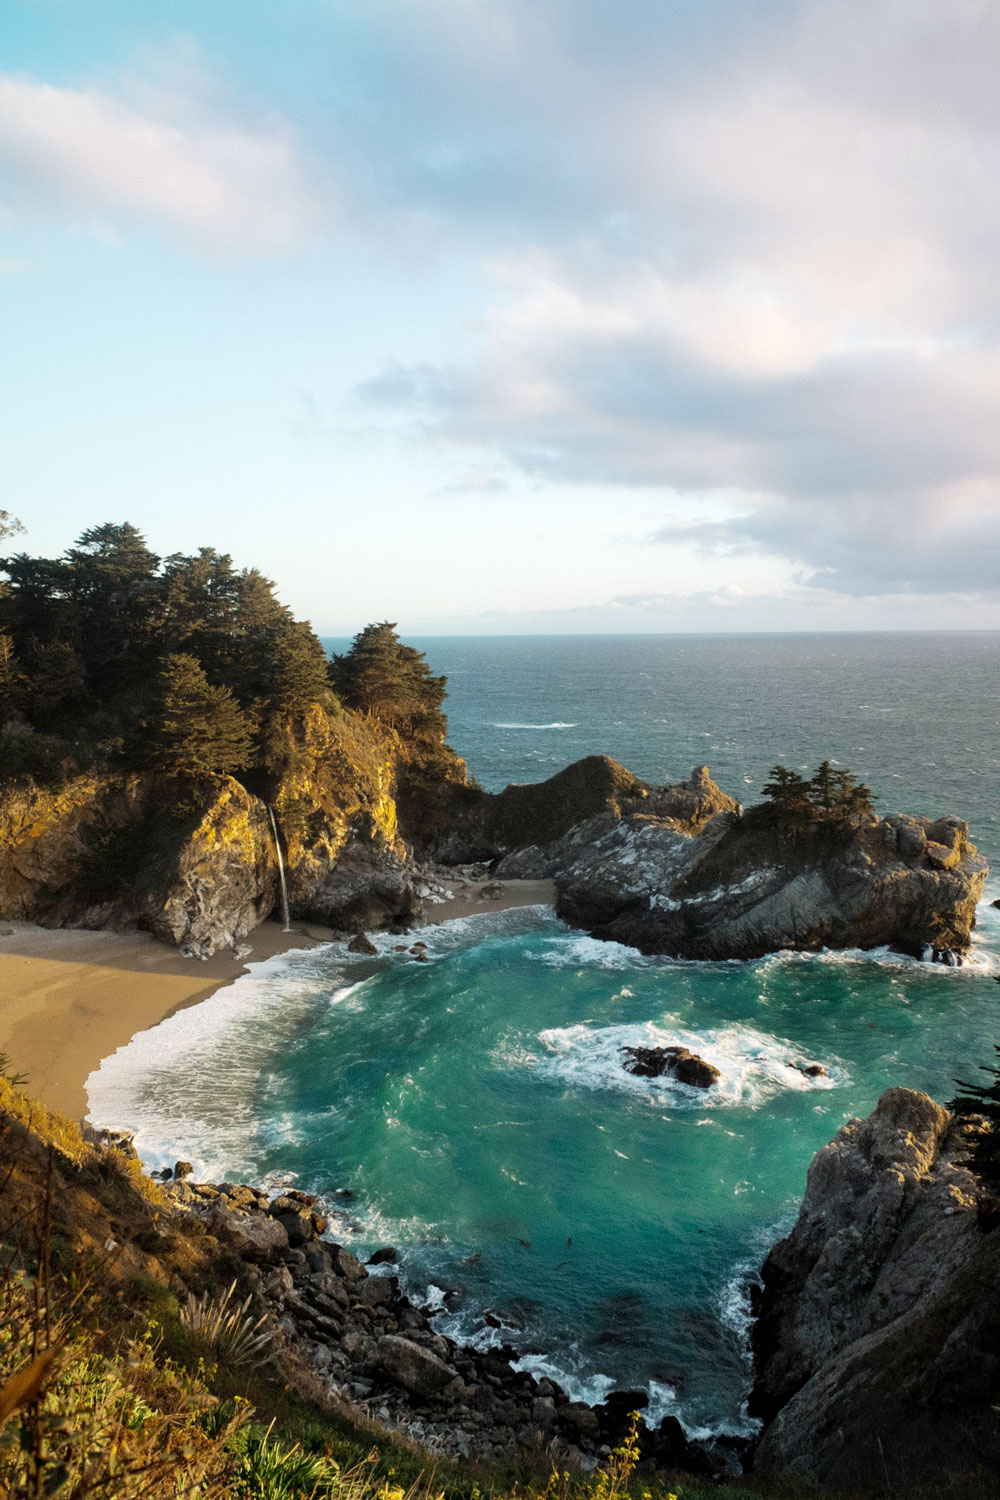 best views of mcway falls by To Vogue or Bust